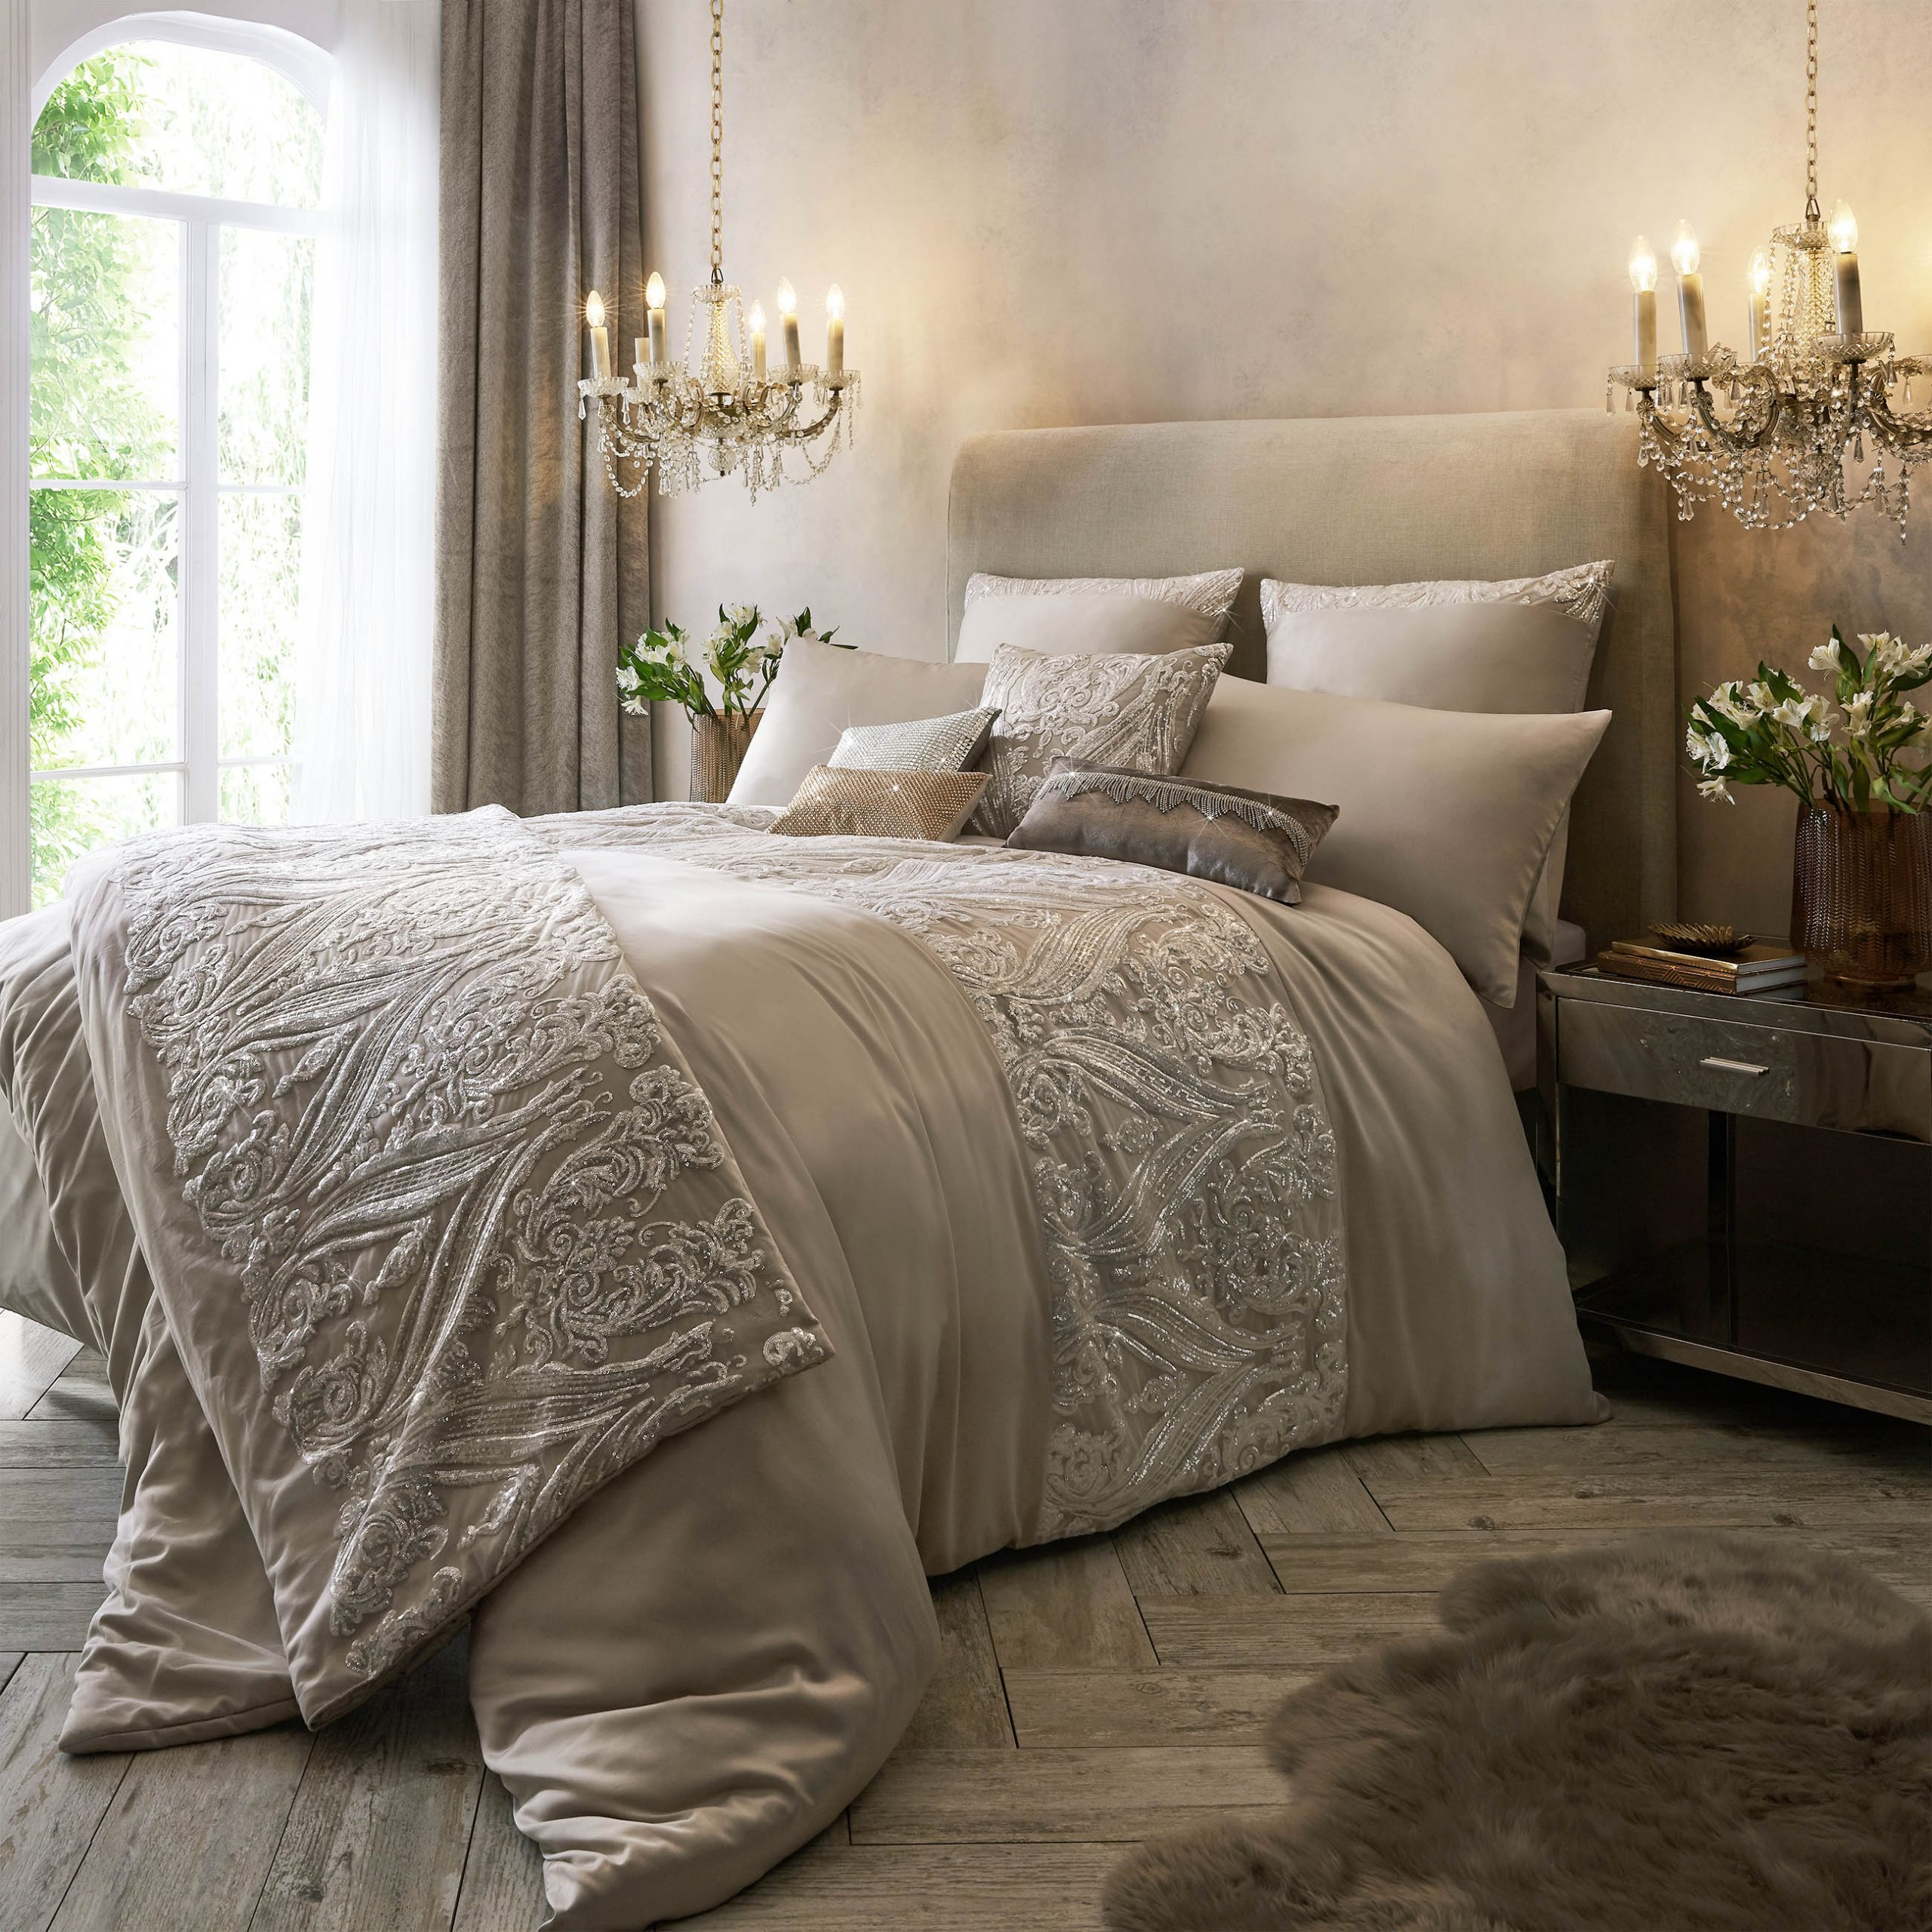 Kylie Minogue Savoy Blush Duvet Cover Includes Free Pillow Cases Maison White